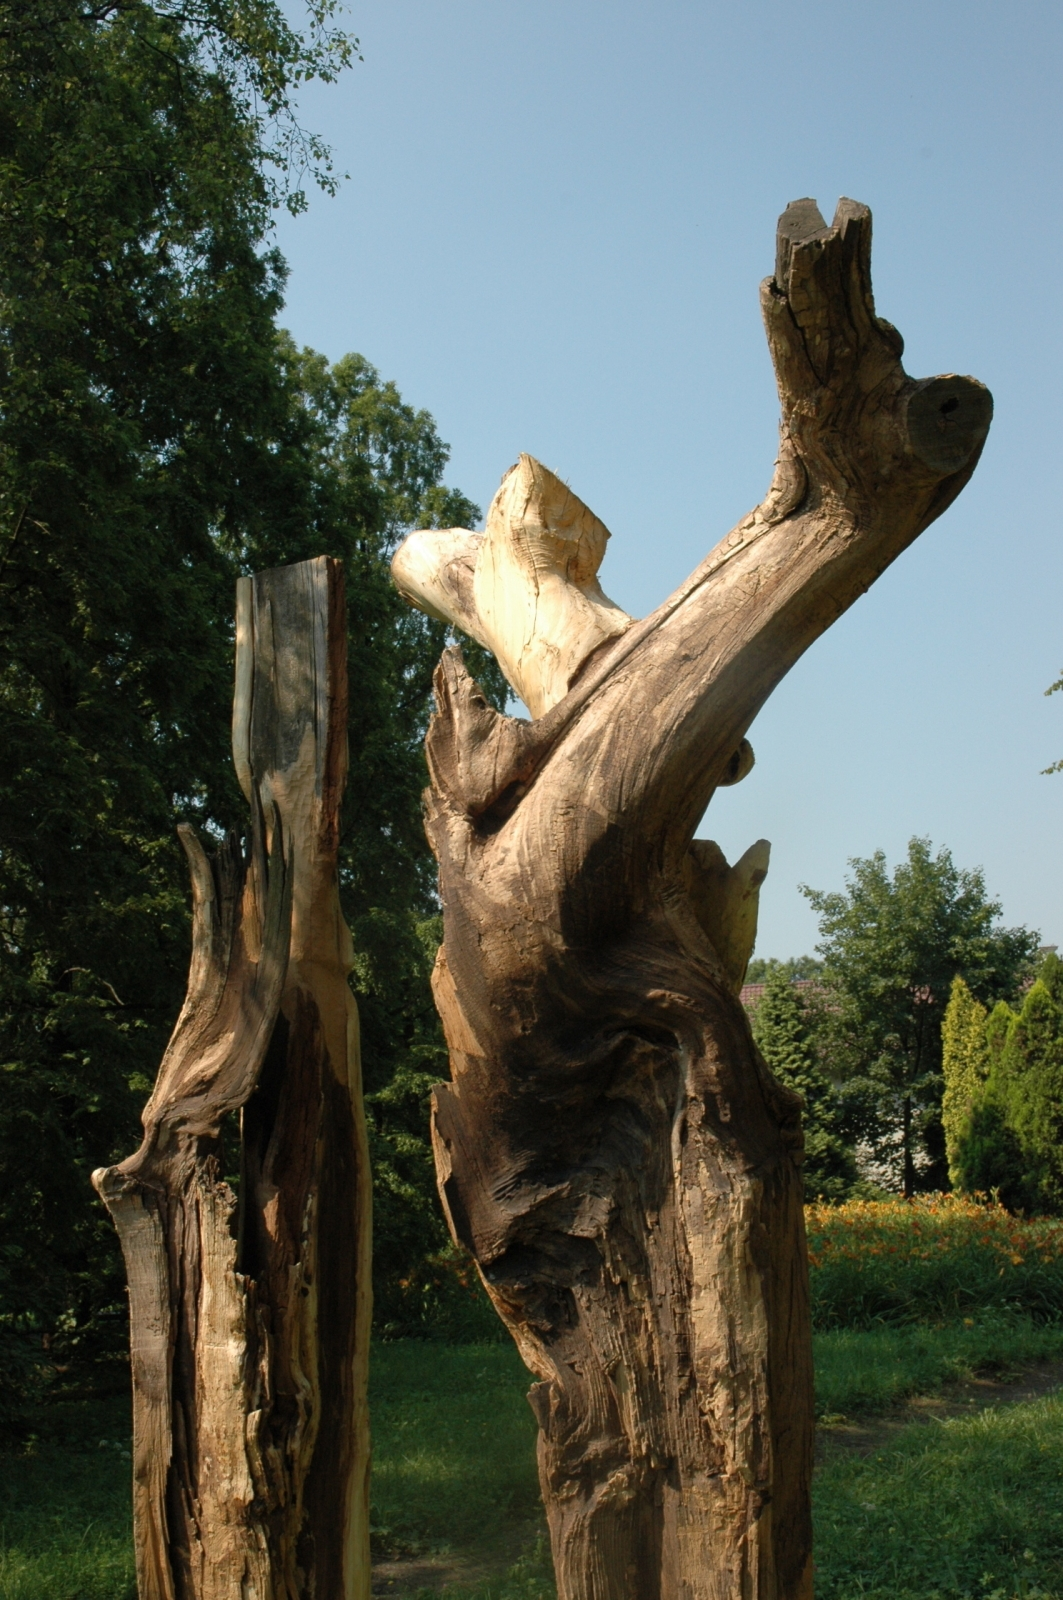 Nature's Body, 2006, dimensions variable (height 3.5 meters), Apple Wood, Botanic Gardens, Krakow, Poland (detail)